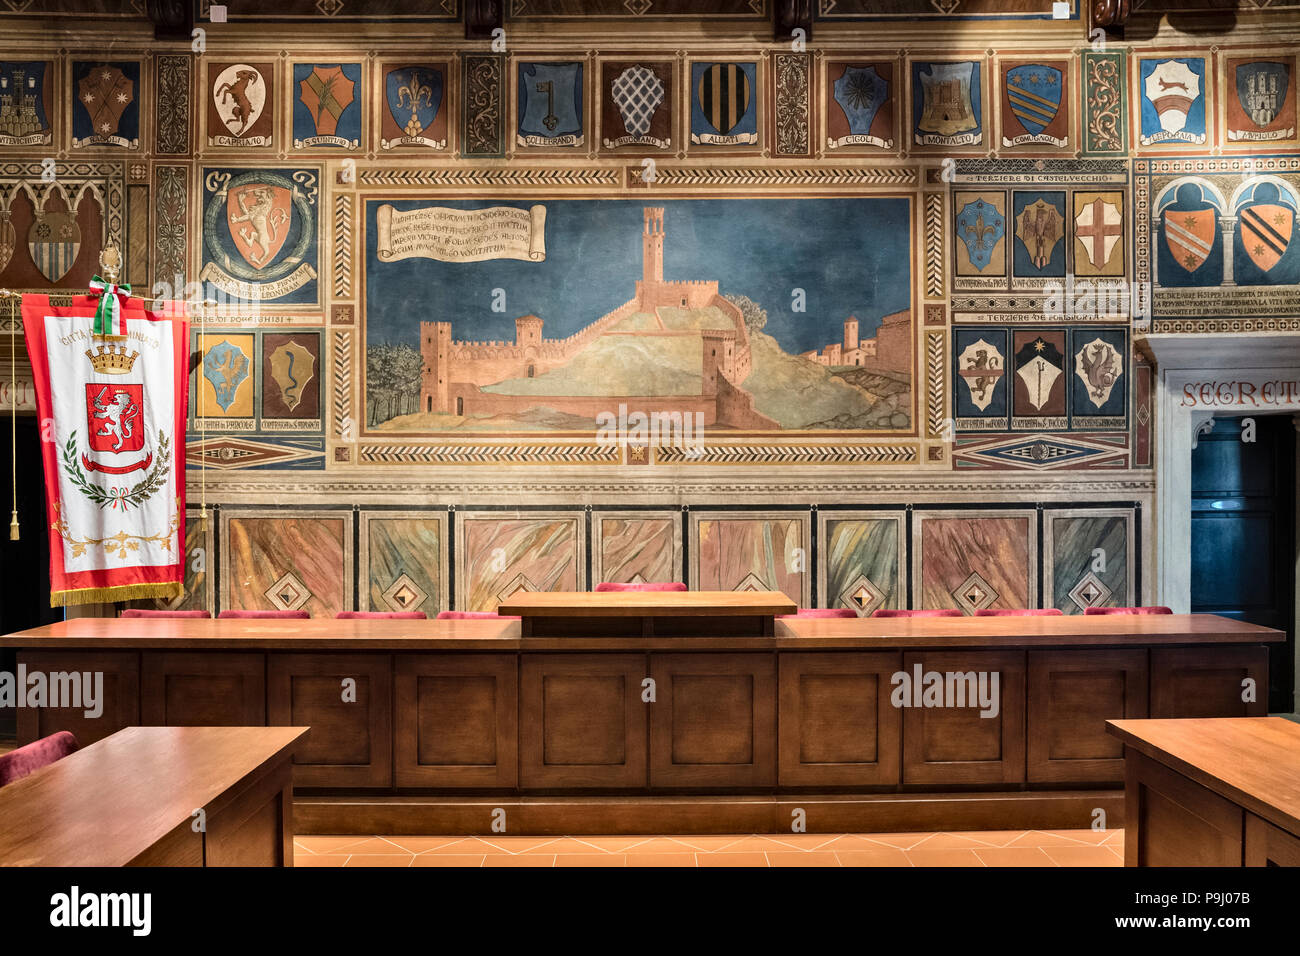 San Miniato, Tuscany - the 14c Palazzo Comunale (town hall). The Council Chamber was frescoed in 1928 in medieval style with scenes from local history - Stock Image